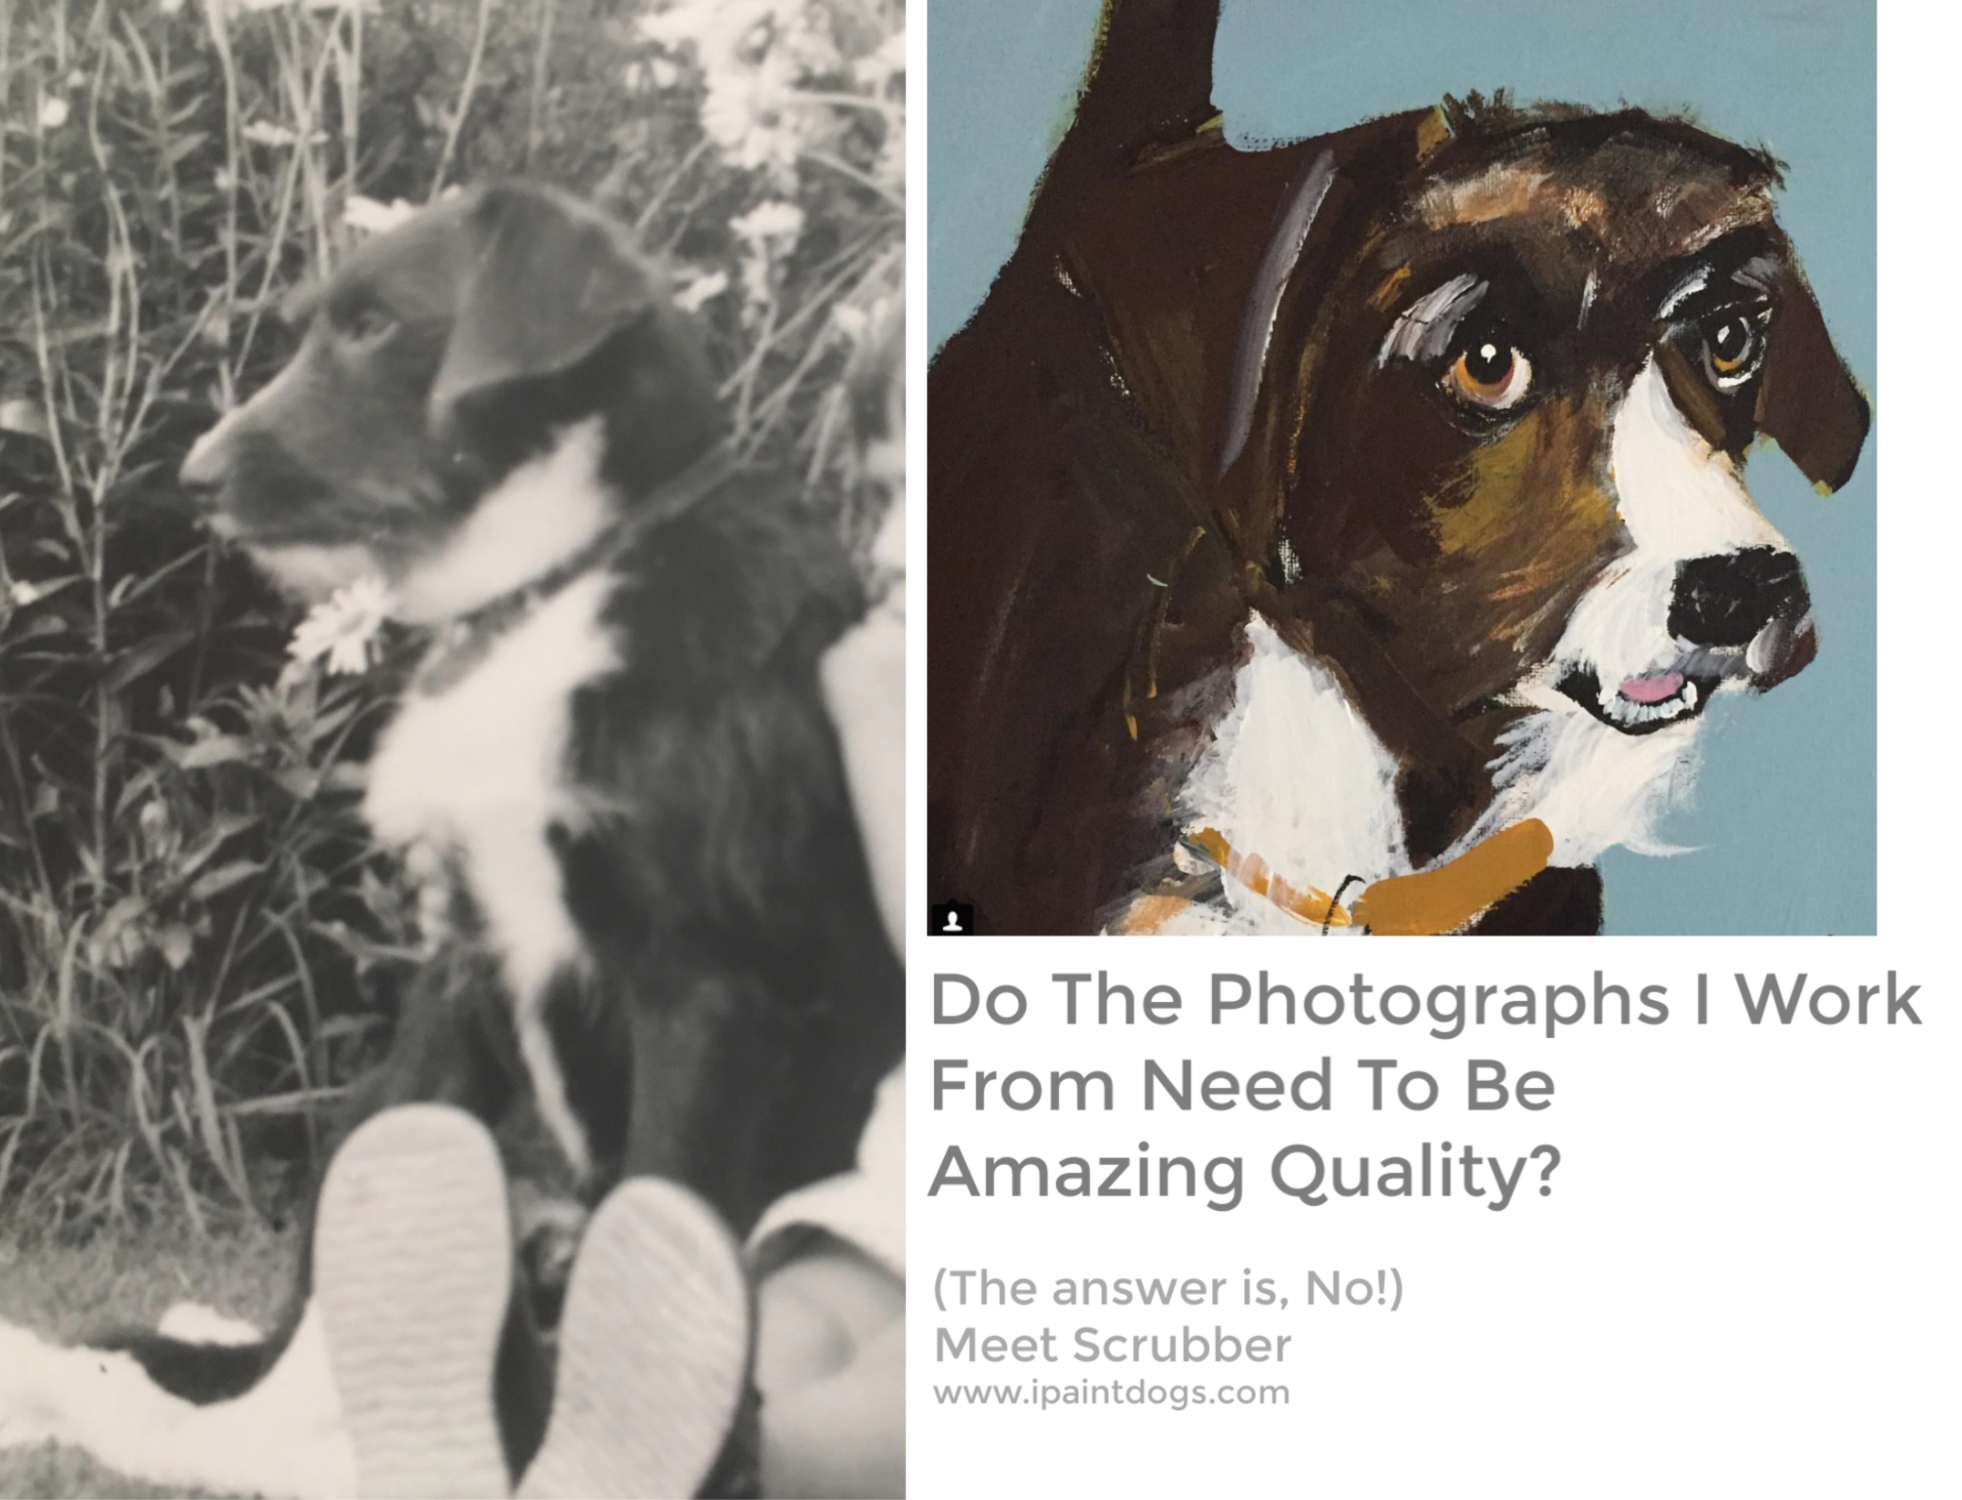 Do The Photographs I work from need to be amazing quality?  No!  ipaintdogs.com